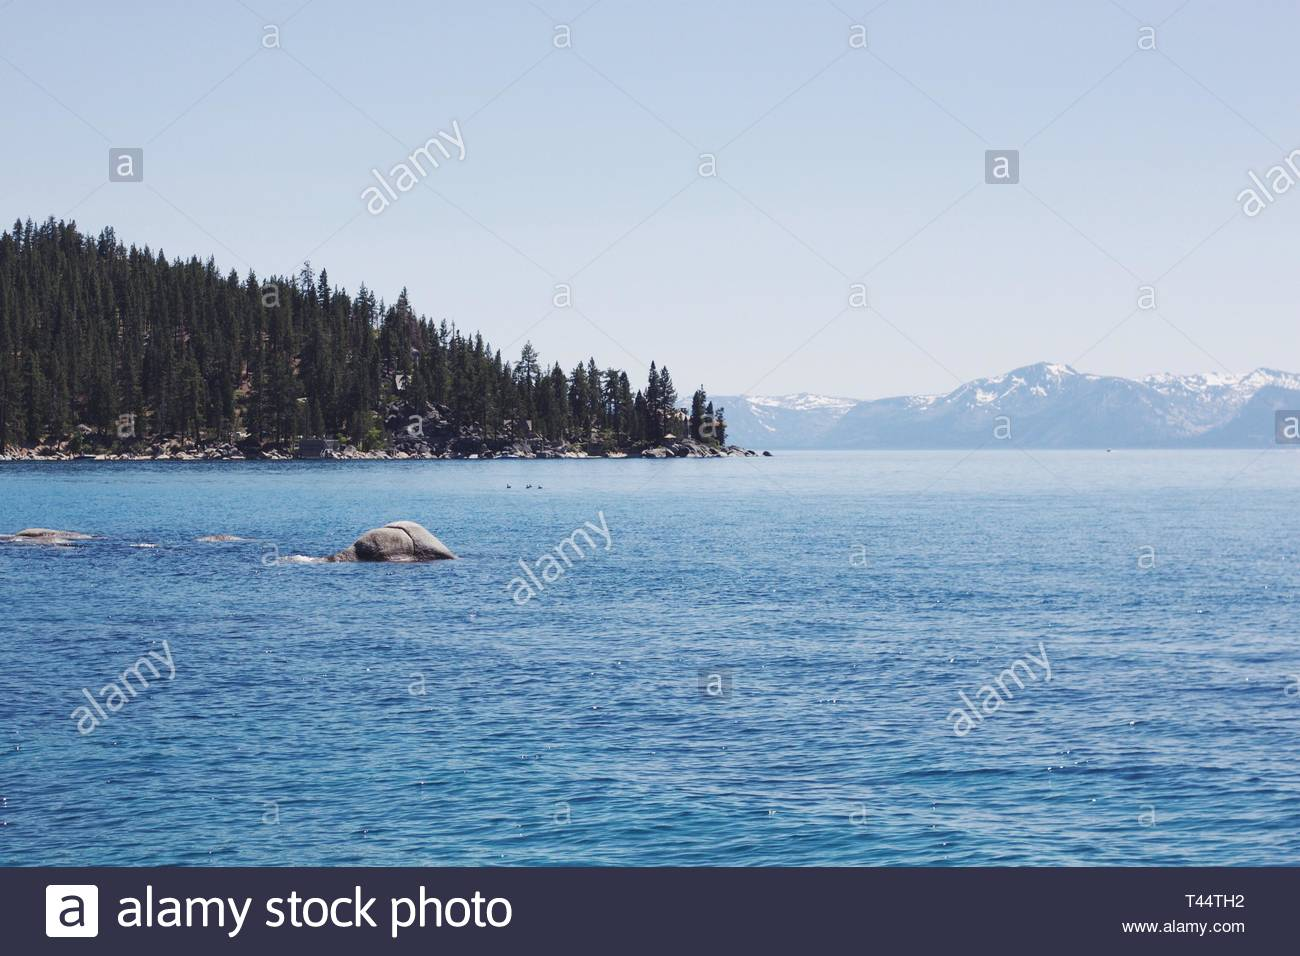 sea with mountains and tr - Stock Image